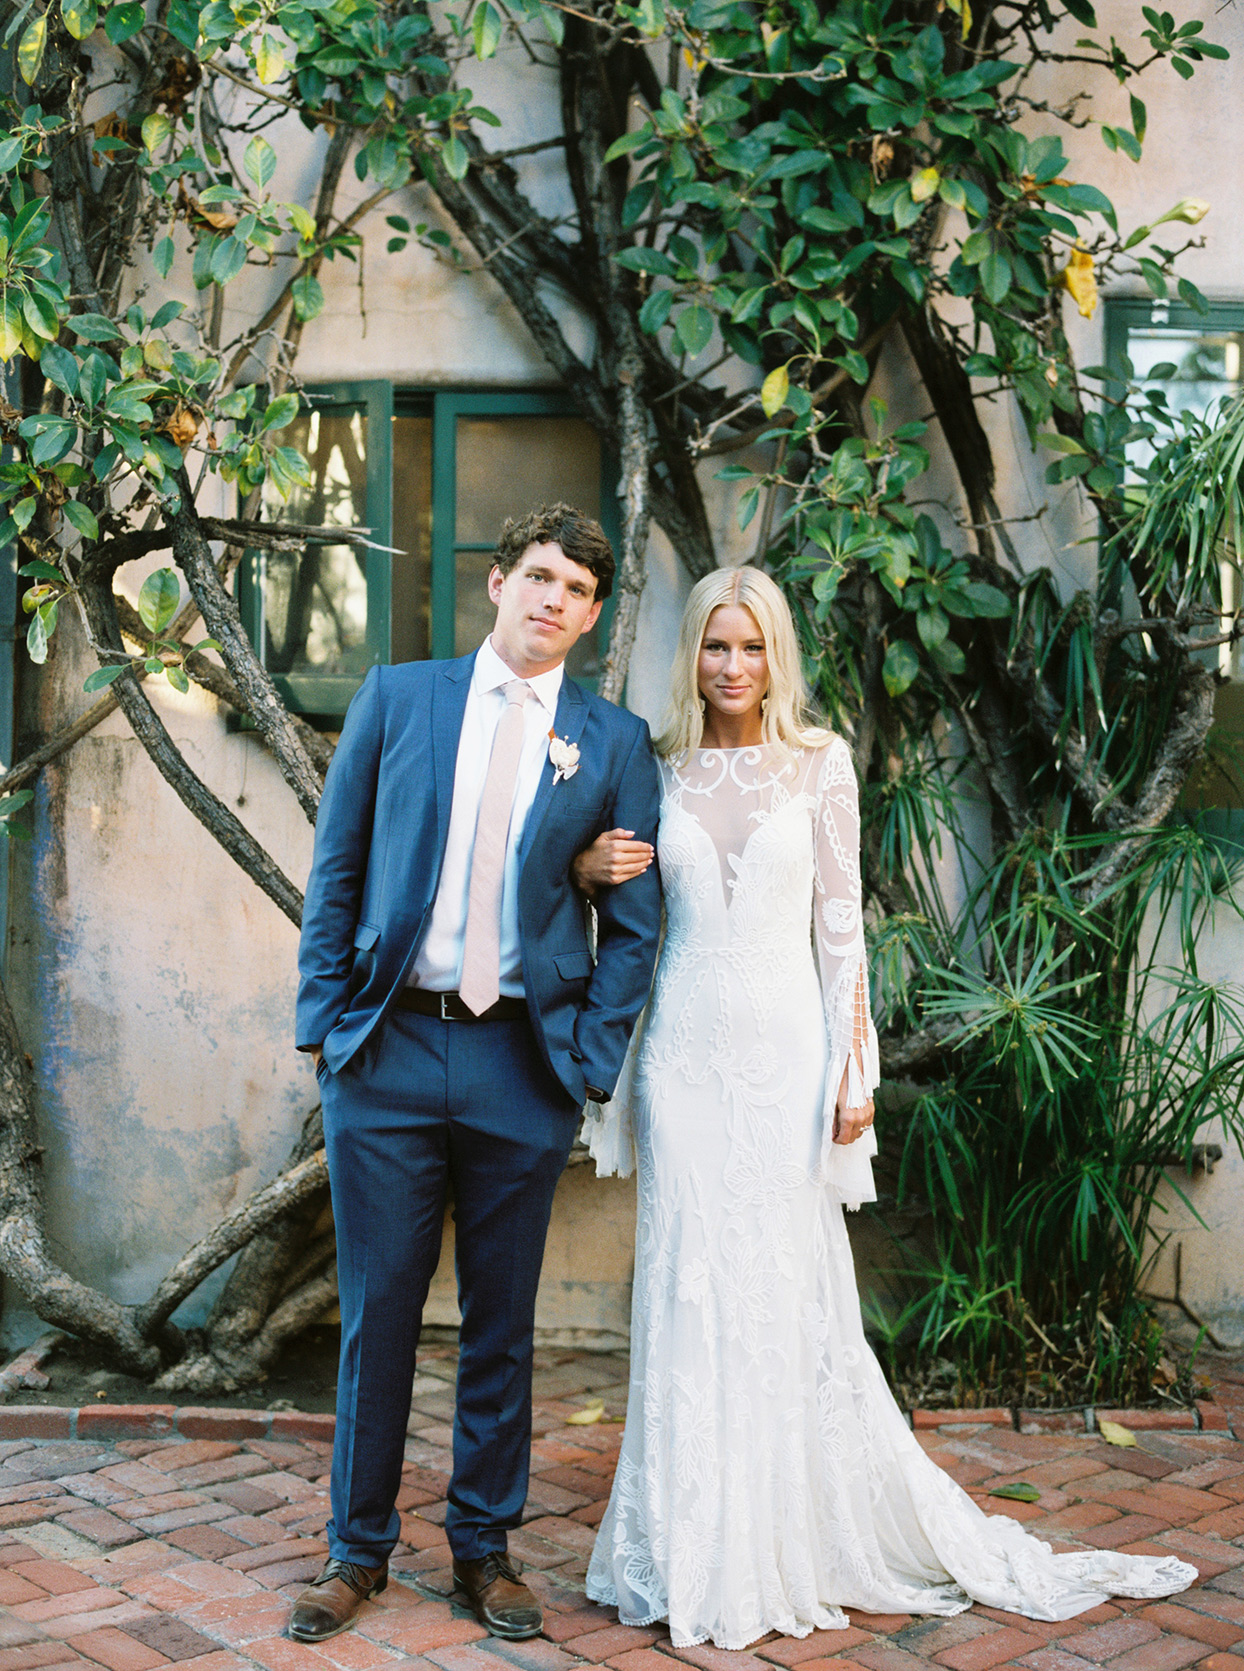 maddy will wedding couple in front of trees in courtyard